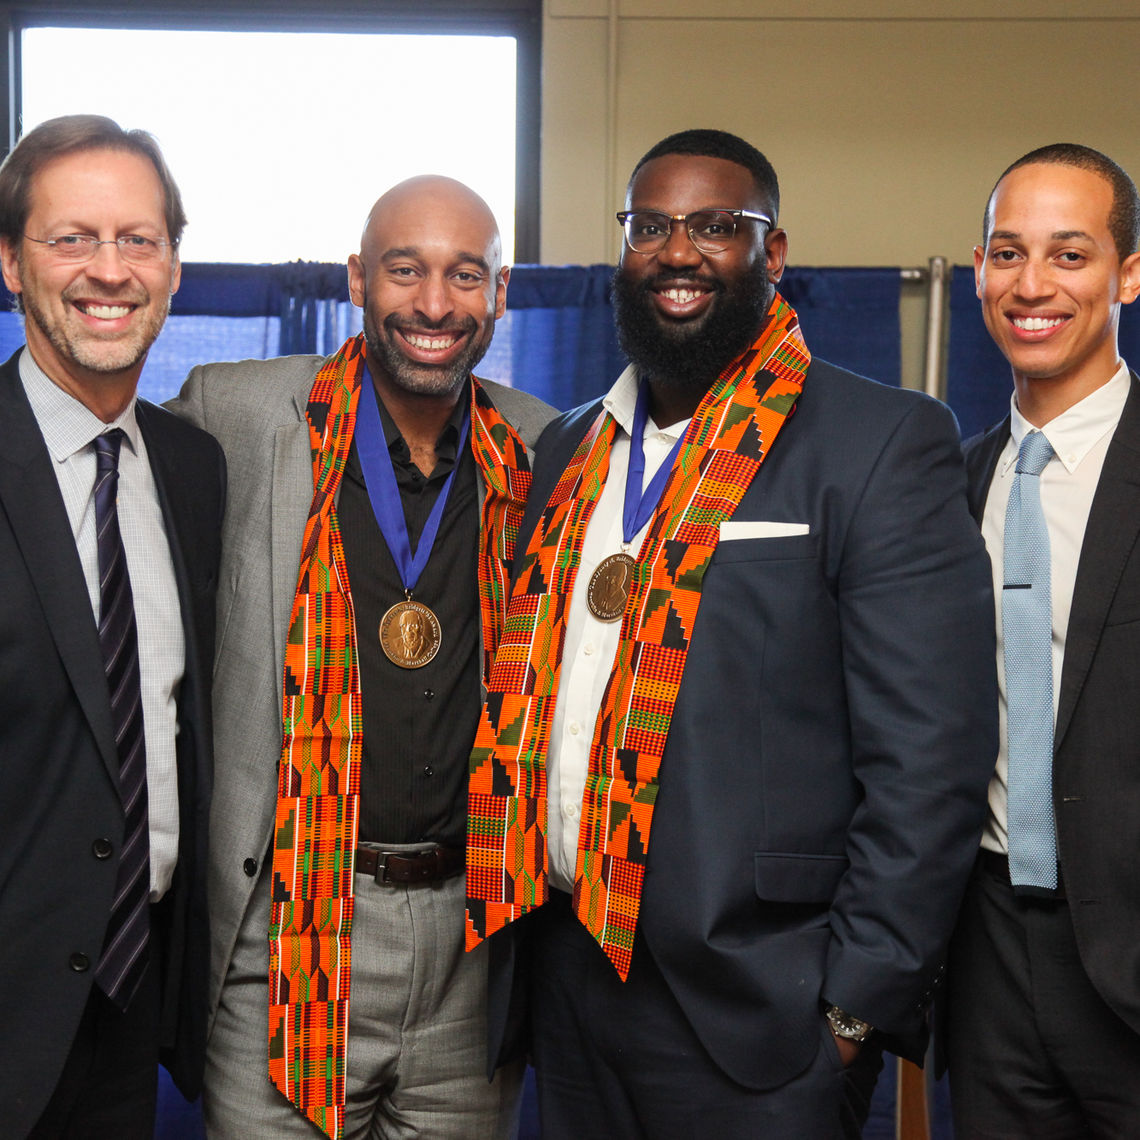 At the African American Alumni Council breakfast Saturday, F&M President Daniel R. Porterfield joins Donnell Butler '95 and Joaquim Hamilton '06, recipients of the Sydney N. Bridgett '51 Award for outstanding achievement in a professional endeavor. Also pictured is Shadoe Tarver '10, this year's Gold Award recipient for significant service to F&M. Unable to attend the event were Wanda Austin '75 and Horace Madison '88.